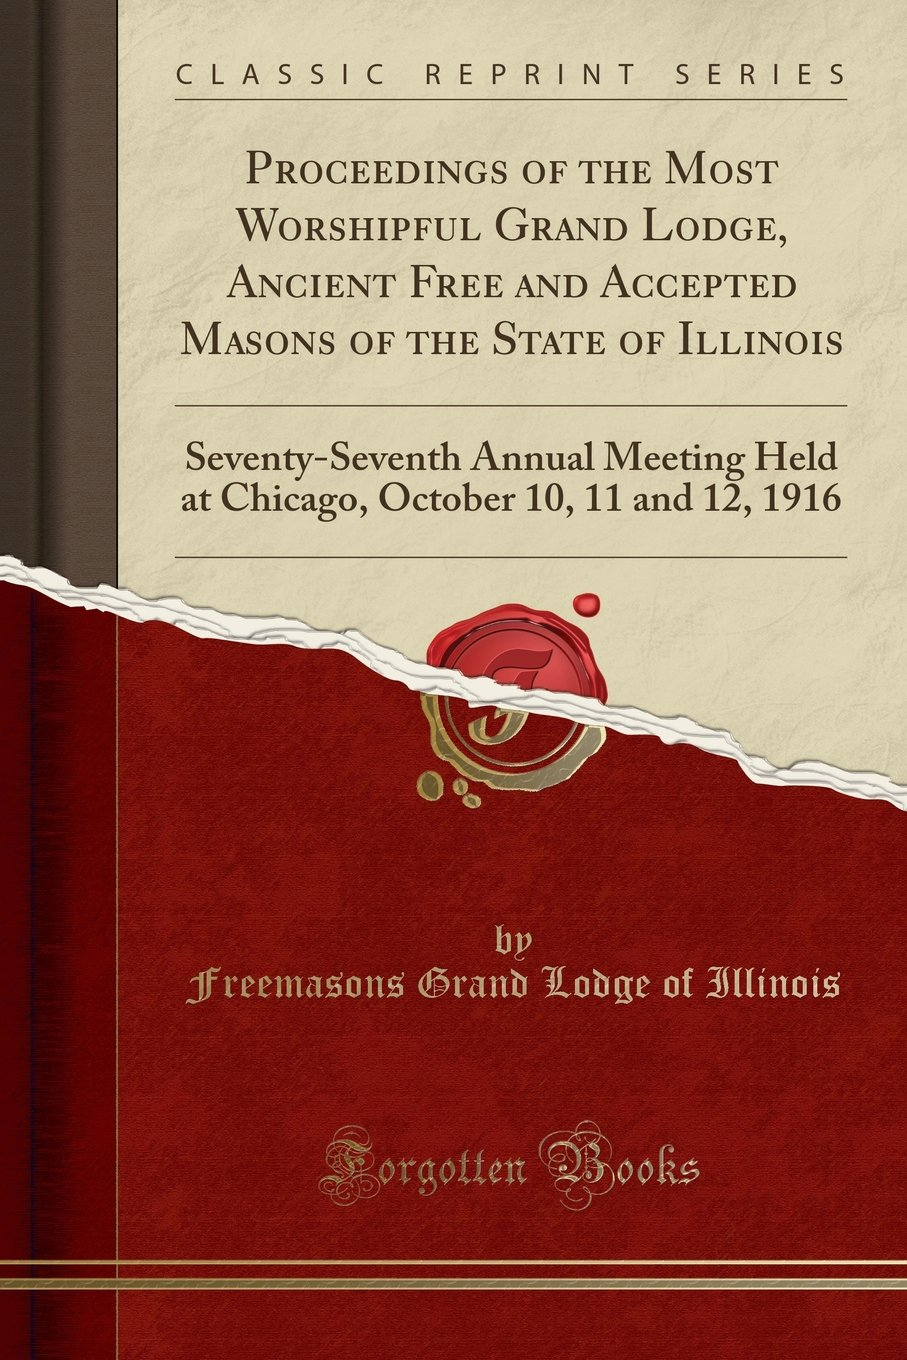 Download Proceedings of the Most Worshipful Grand Lodge, Ancient Free and Accepted Masons of the State of Illinois: Seventy-Seventh Annual Meeting Held at Chicago, October 10, 11 and 12, 1916 (Classic Reprint) PDF